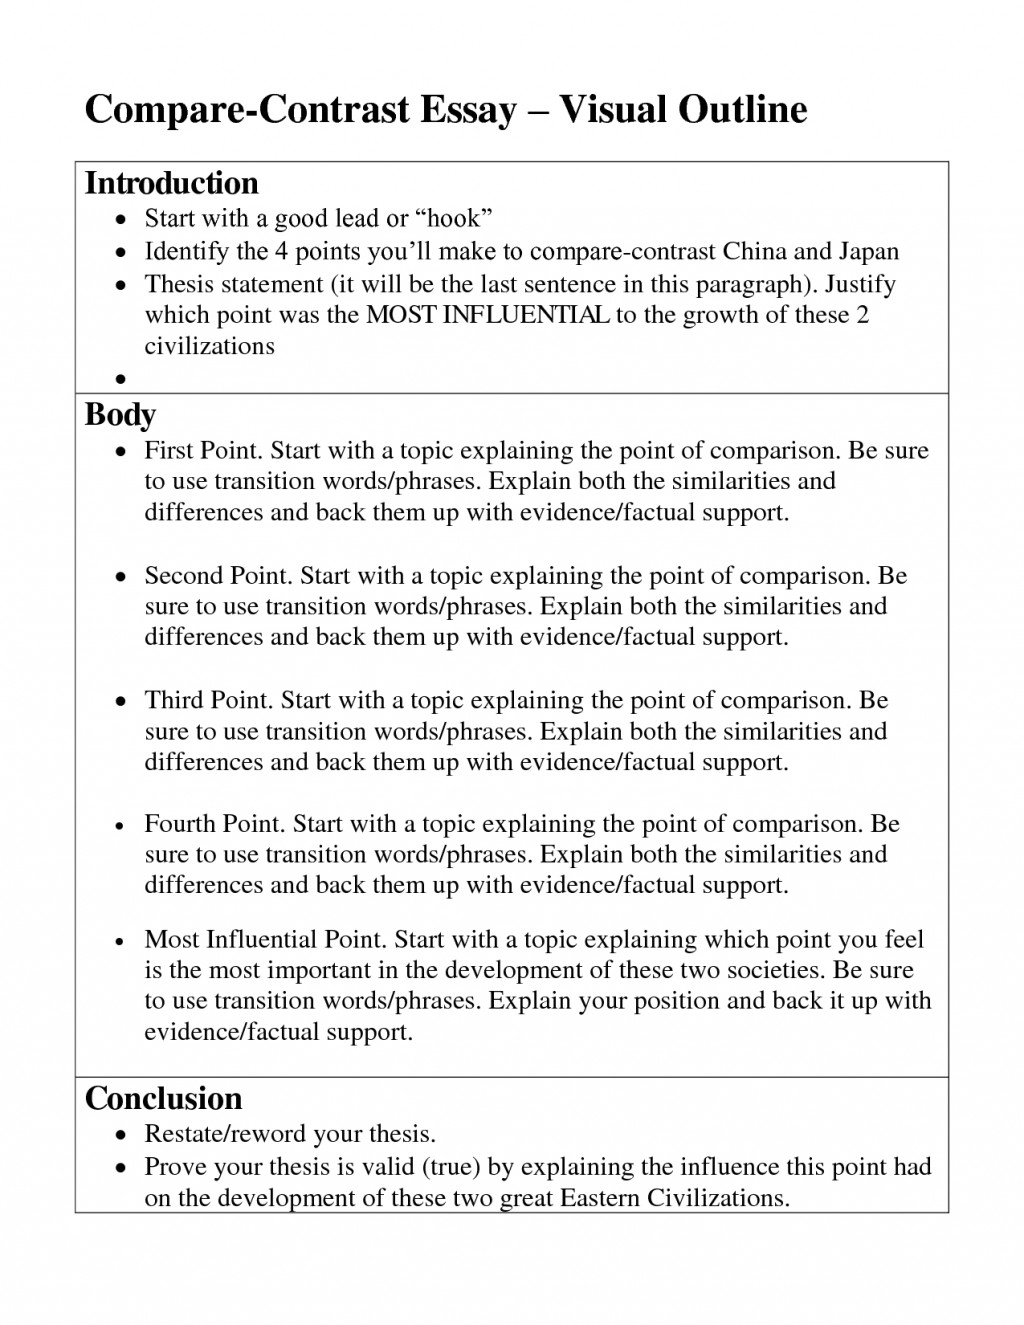 006 Contrast Essays Remarkable Essay Examples Compare High School Vs College Free Large